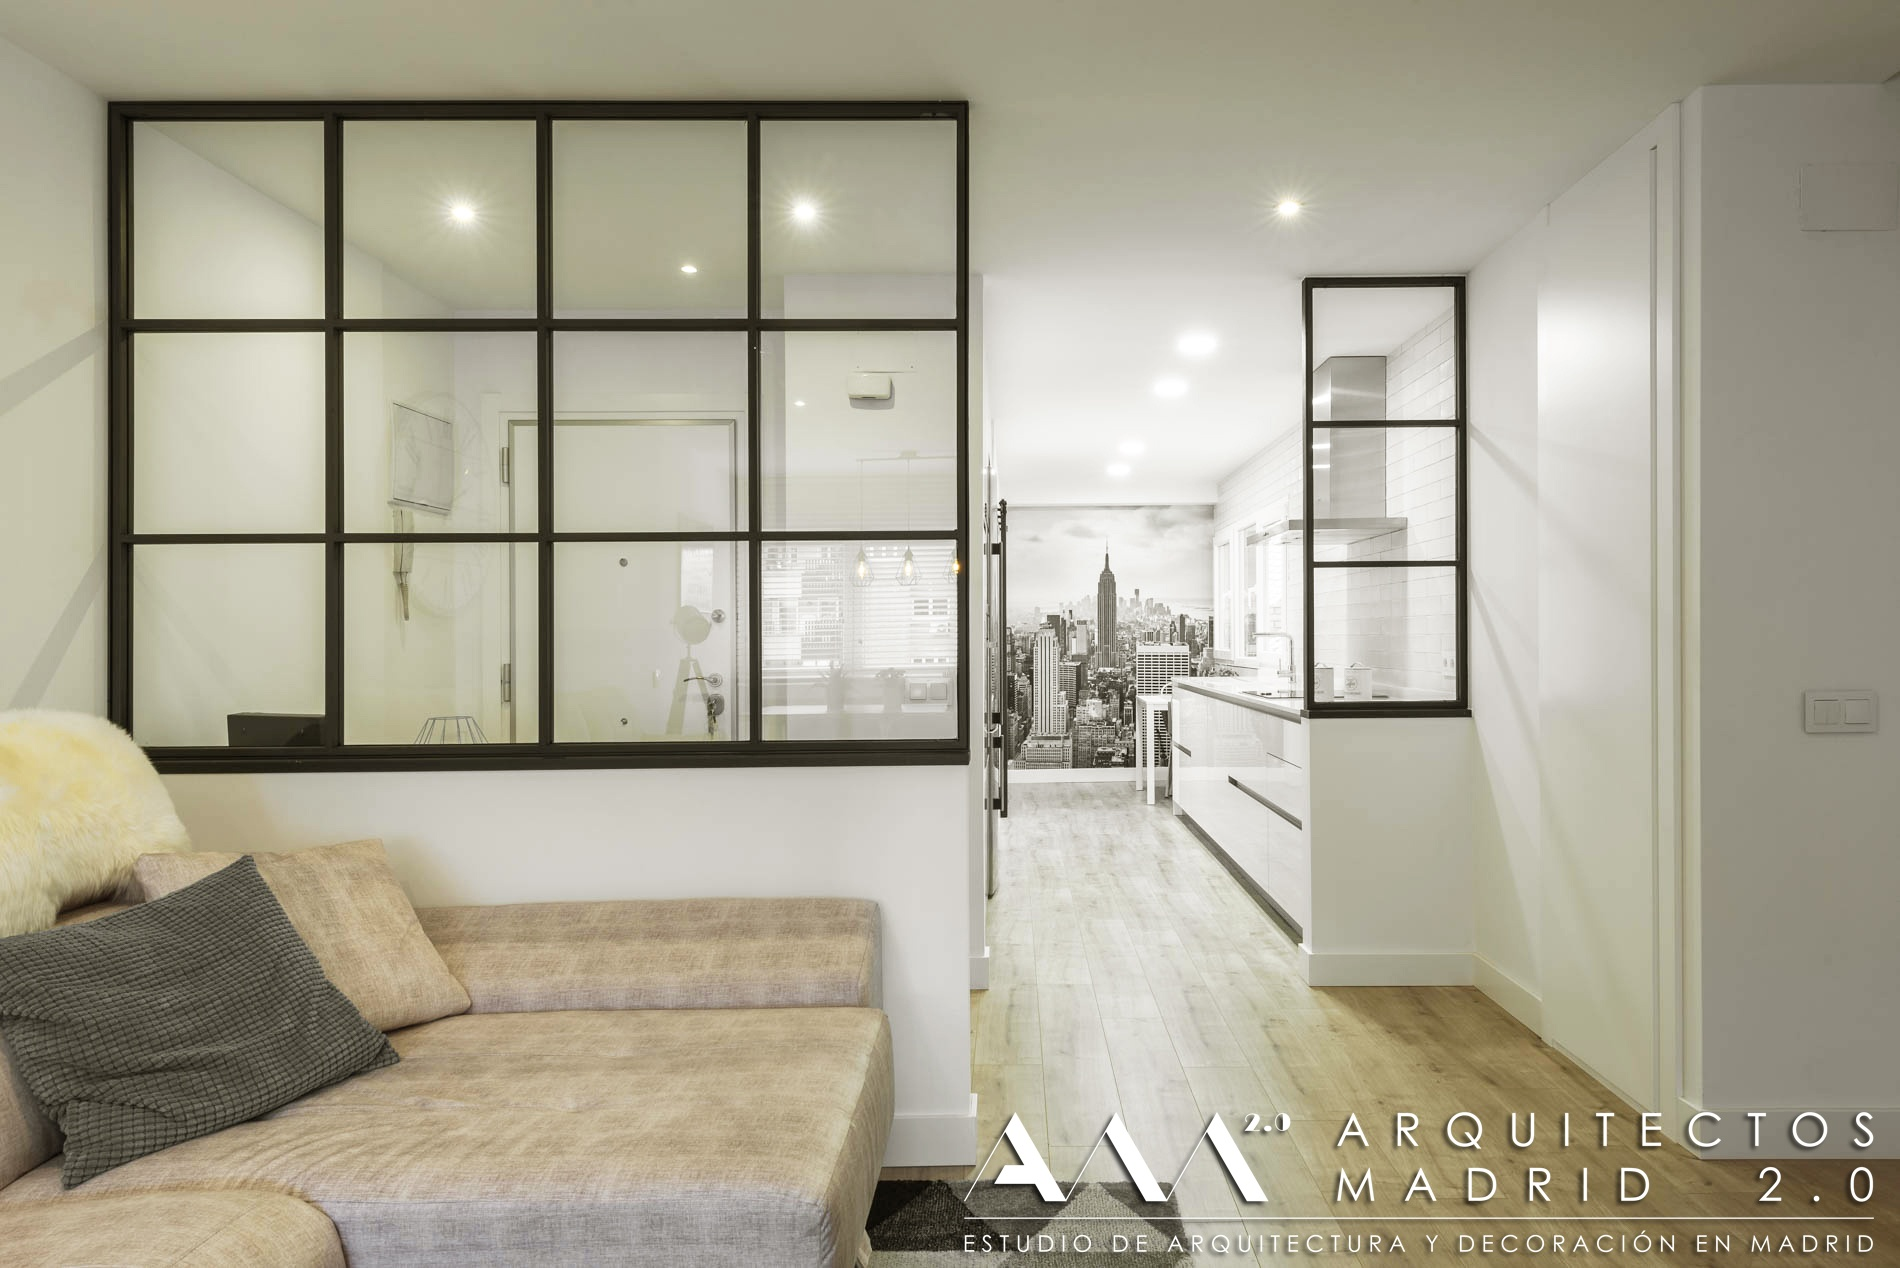 reforma-vivienda-housing-reform-architects-design-by-arquitectos-madrid-06